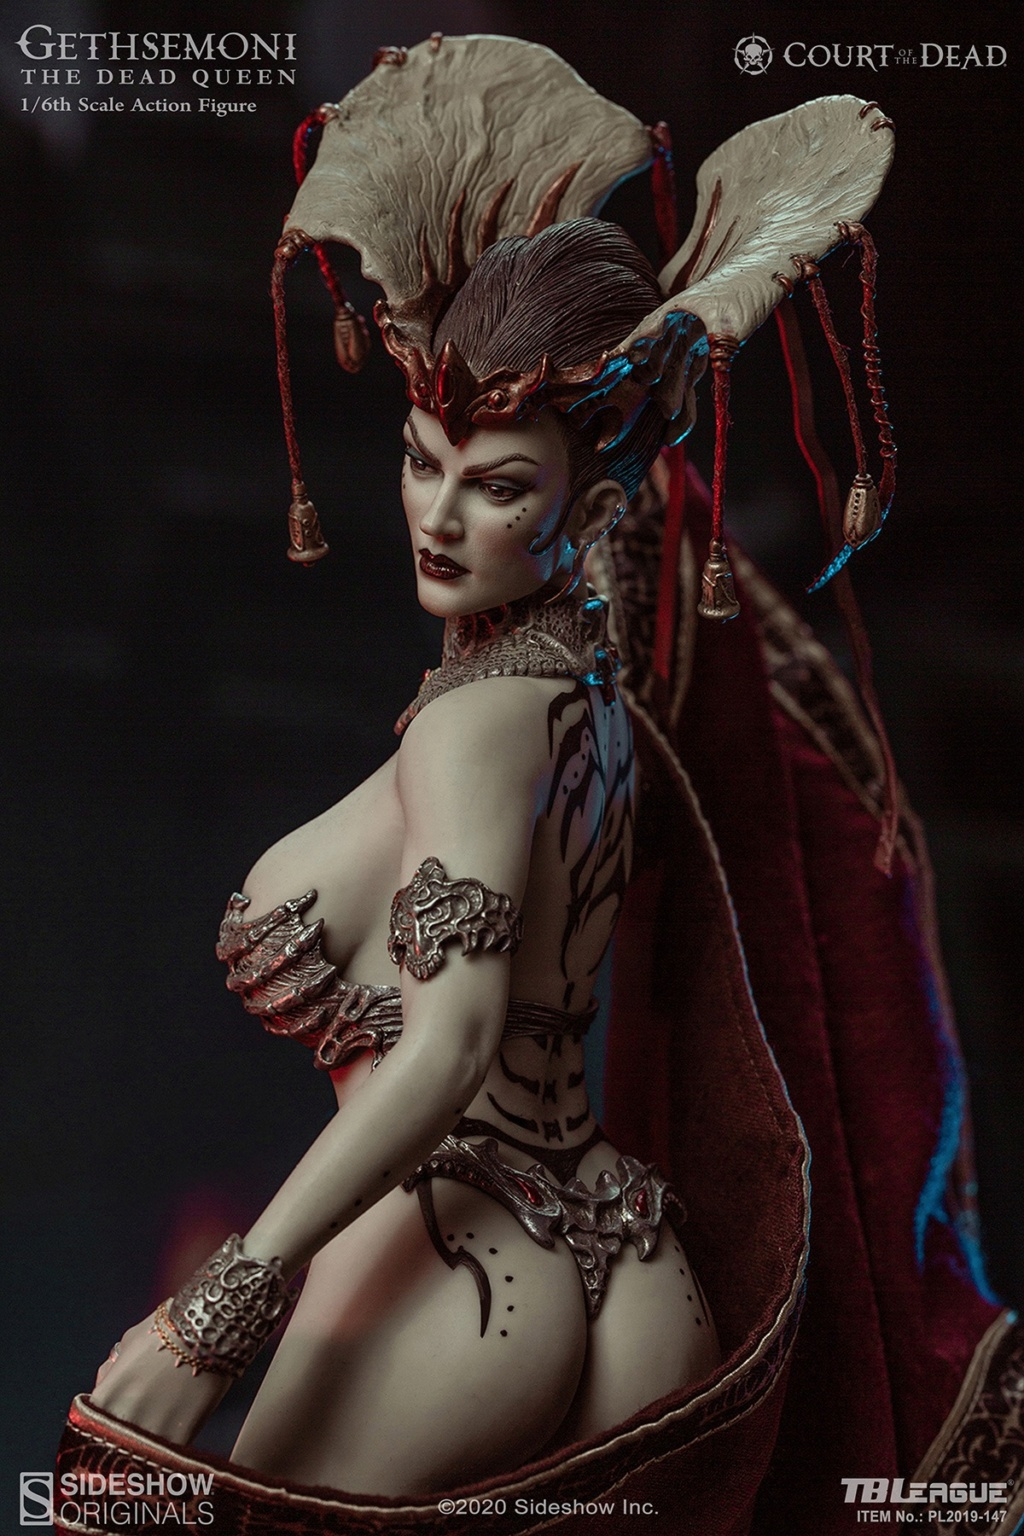 sideshow - NEW PRODUCT: Tbleague x SIDESHOW New: 1/6 Court of the Dead: Gethsemoni The Dead Queen action figure (PL2019-147) 16511210